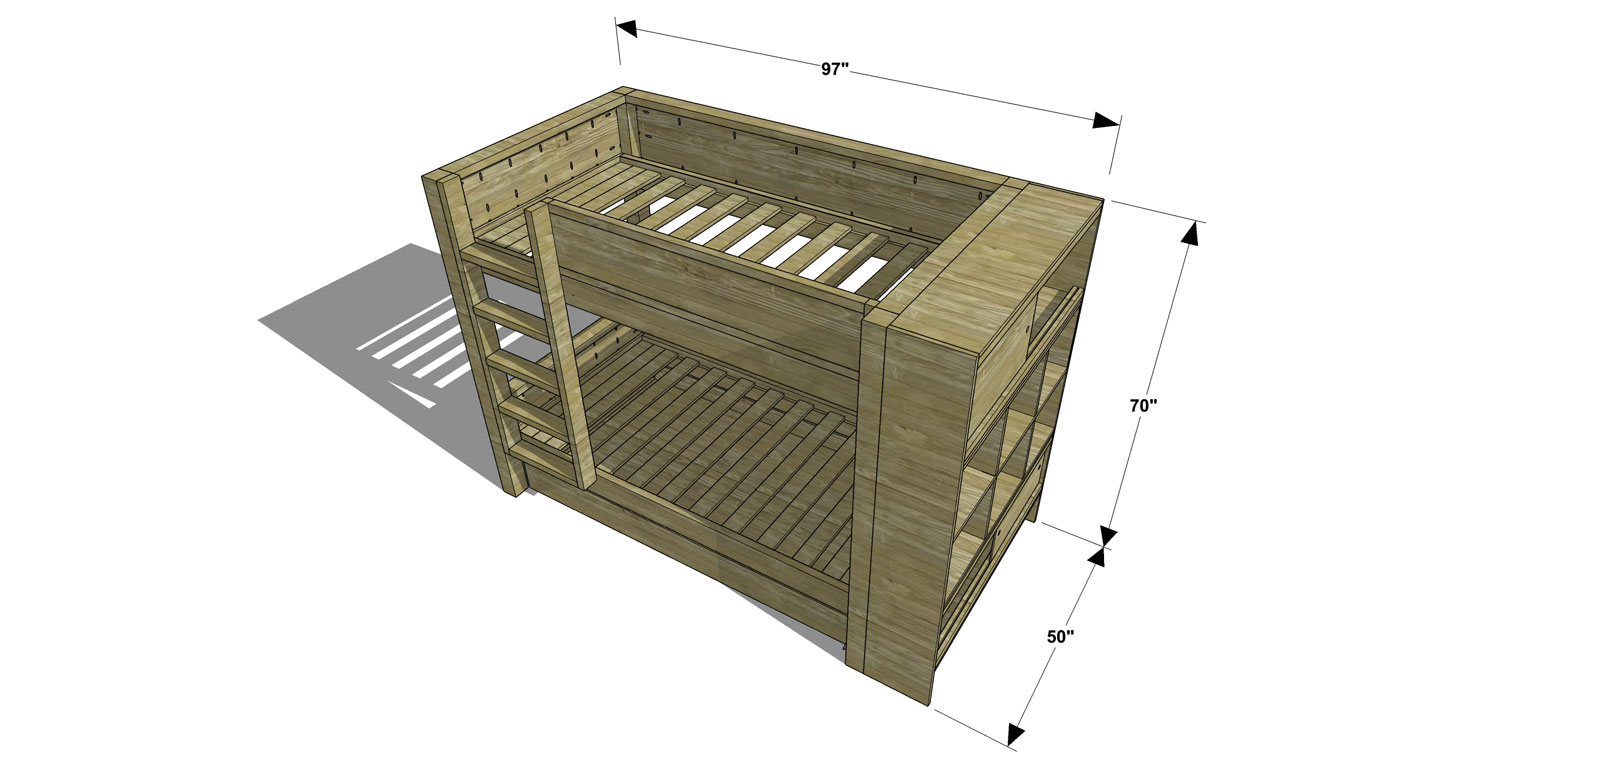 Dimensions for The Design Confidential Free DIY Furniture Plans // How to Build a Duet Bunk Bed